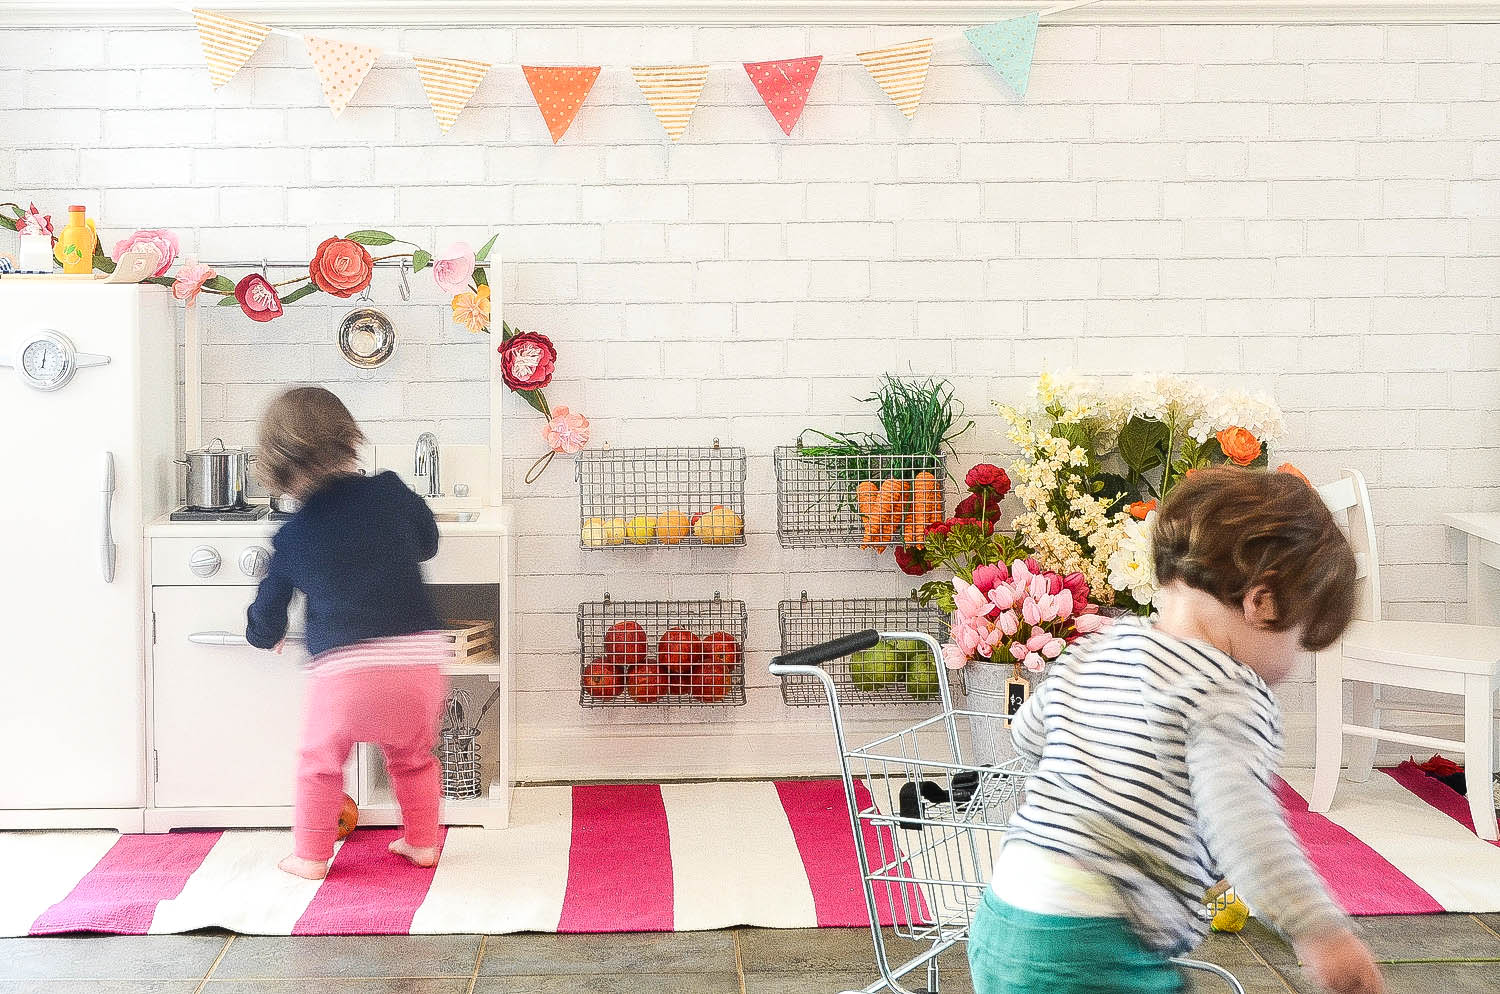 Our Playroom | Kitchen, Market, Cafe in One! — iron & twine